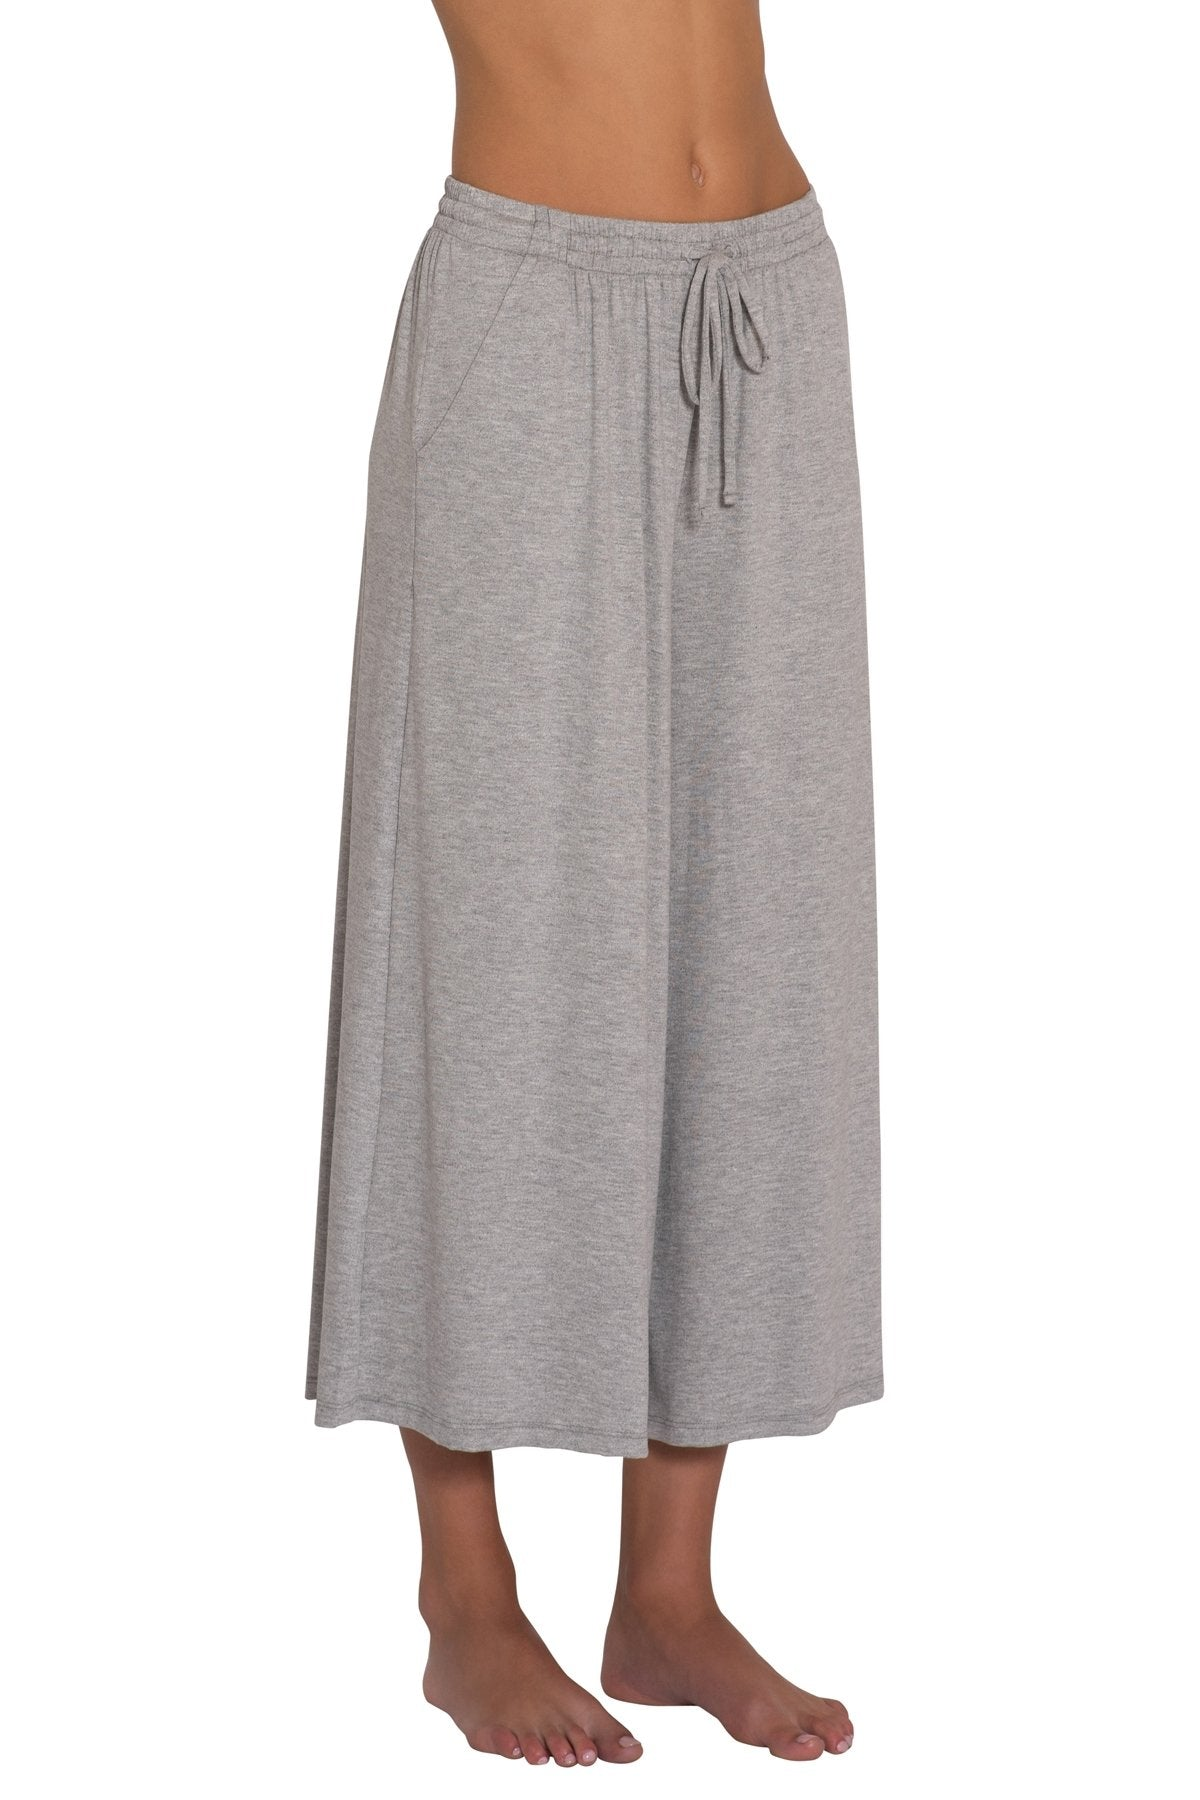 Darby Cropped Wide Leg Pants - Heather Grey | Eberjey - Women's Loungewear